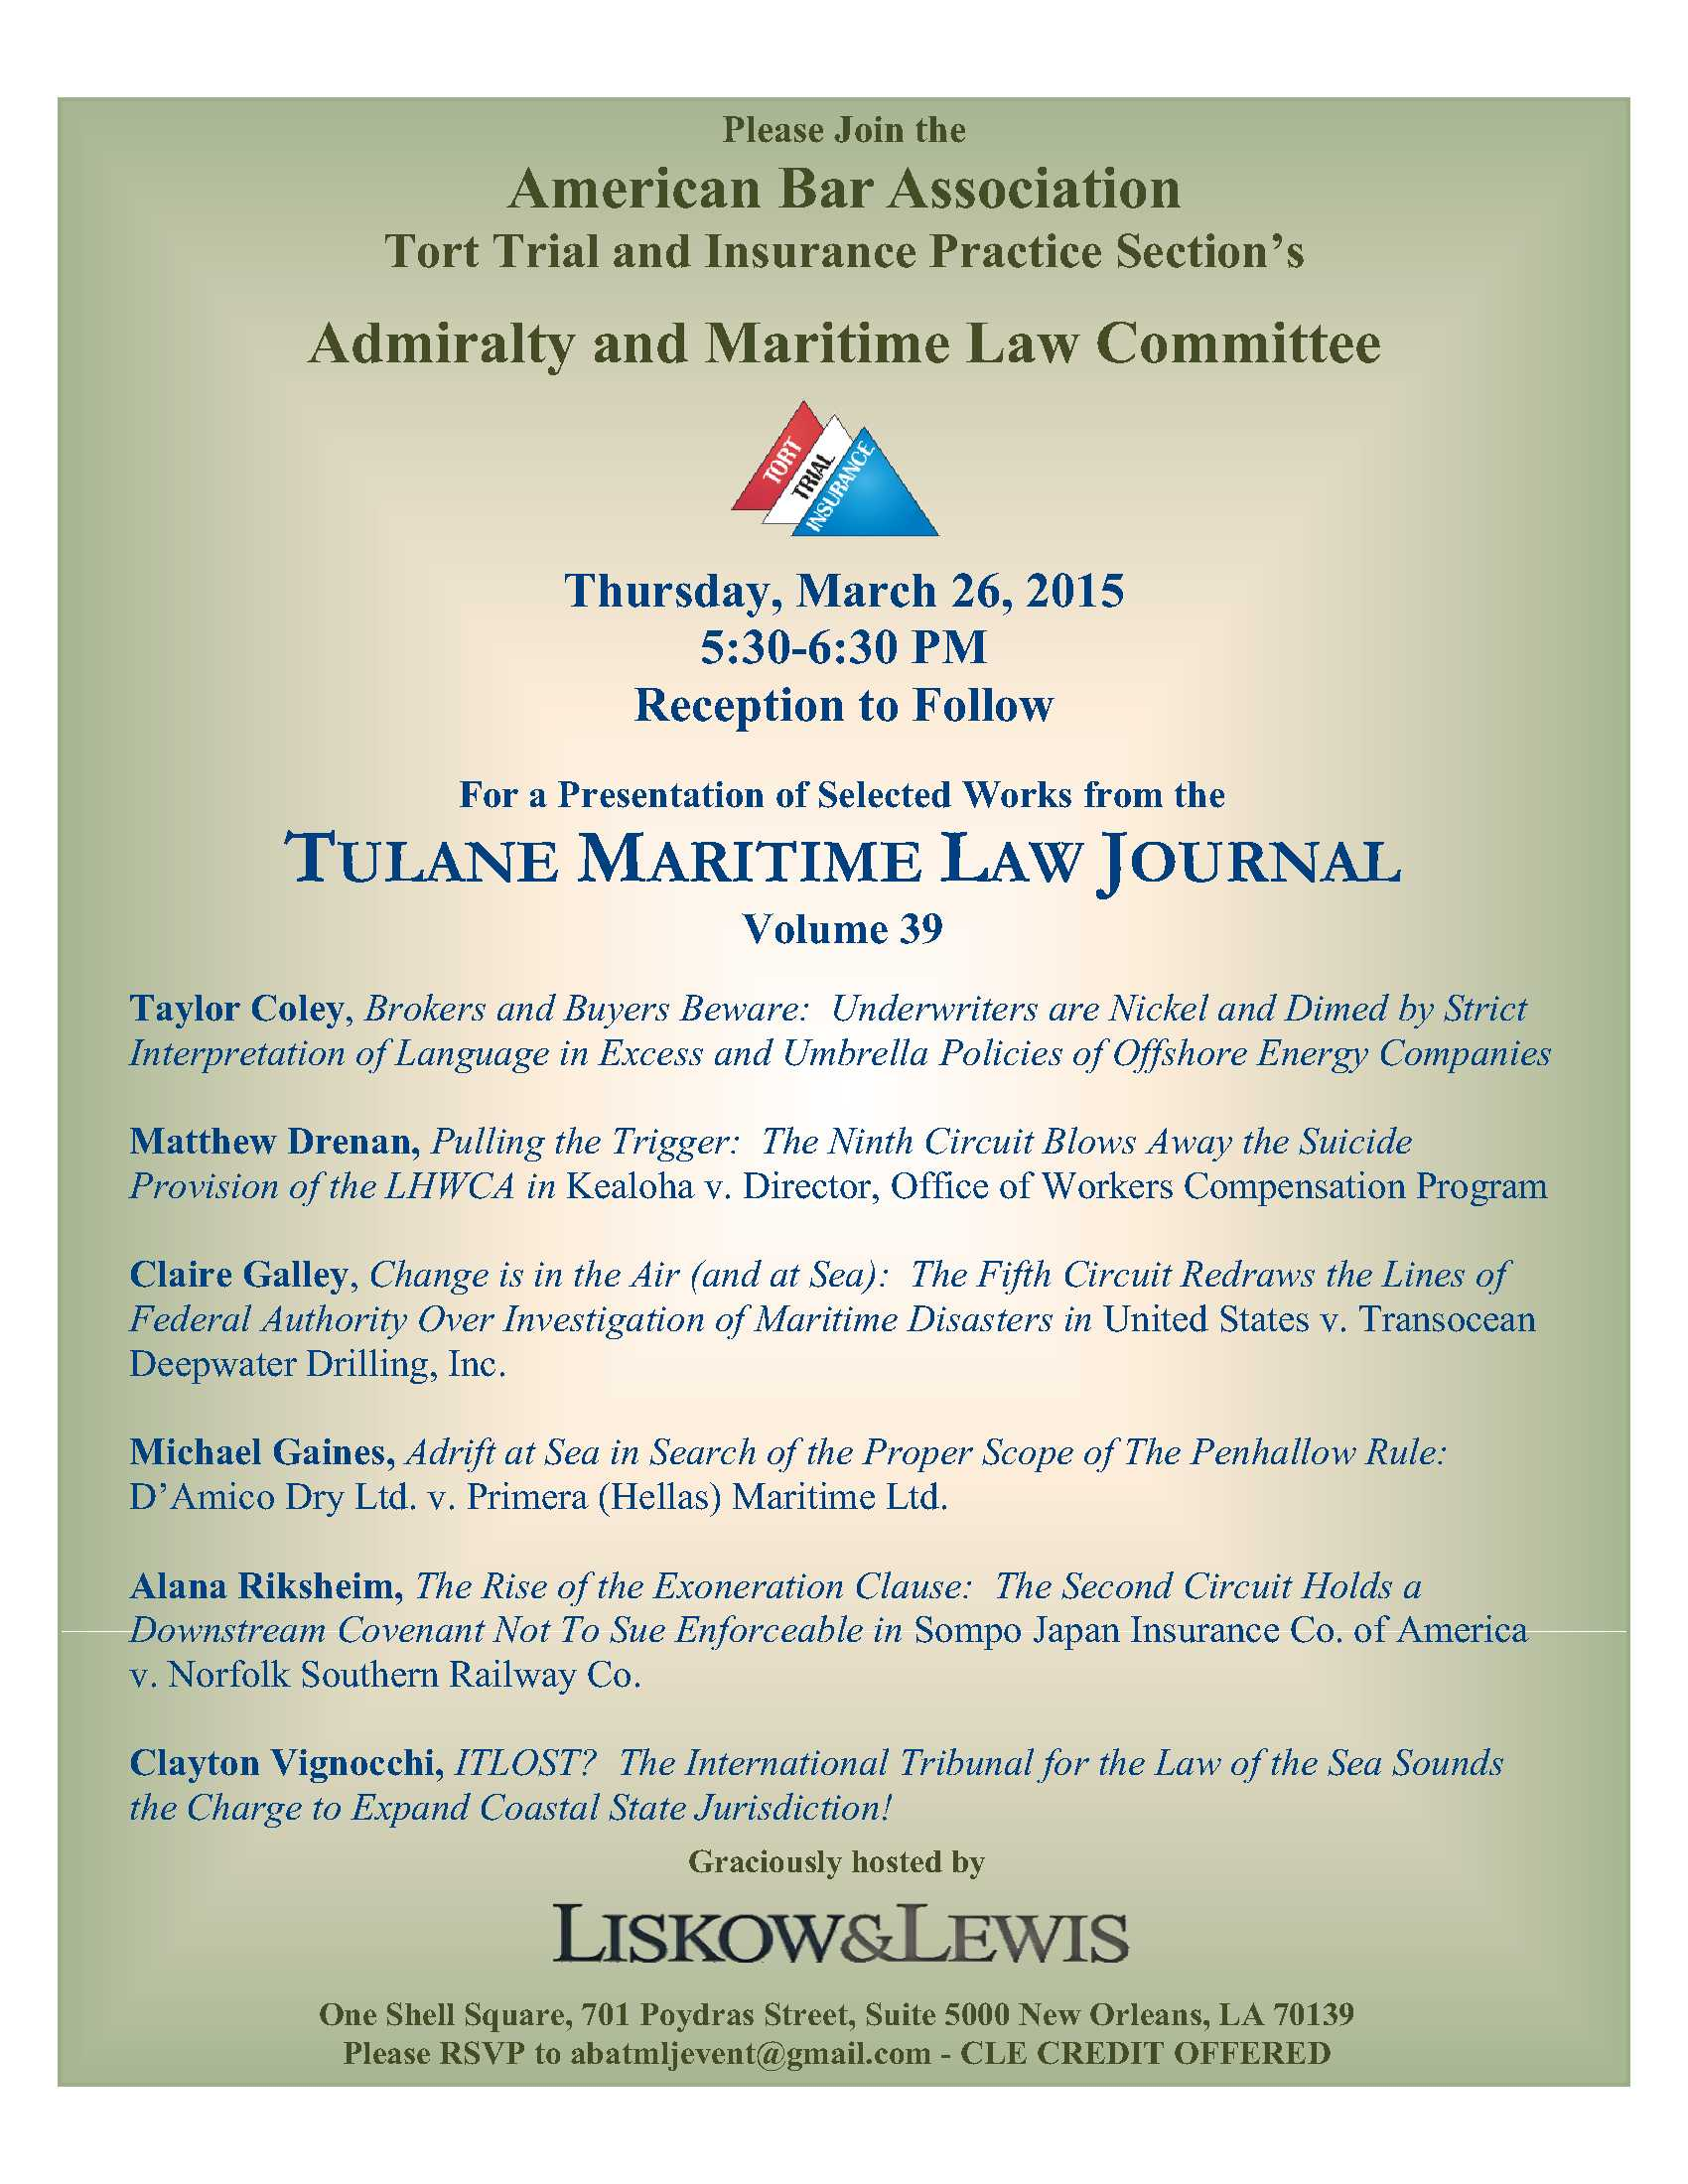 Tulane Maritime Law Journal Event Flyer